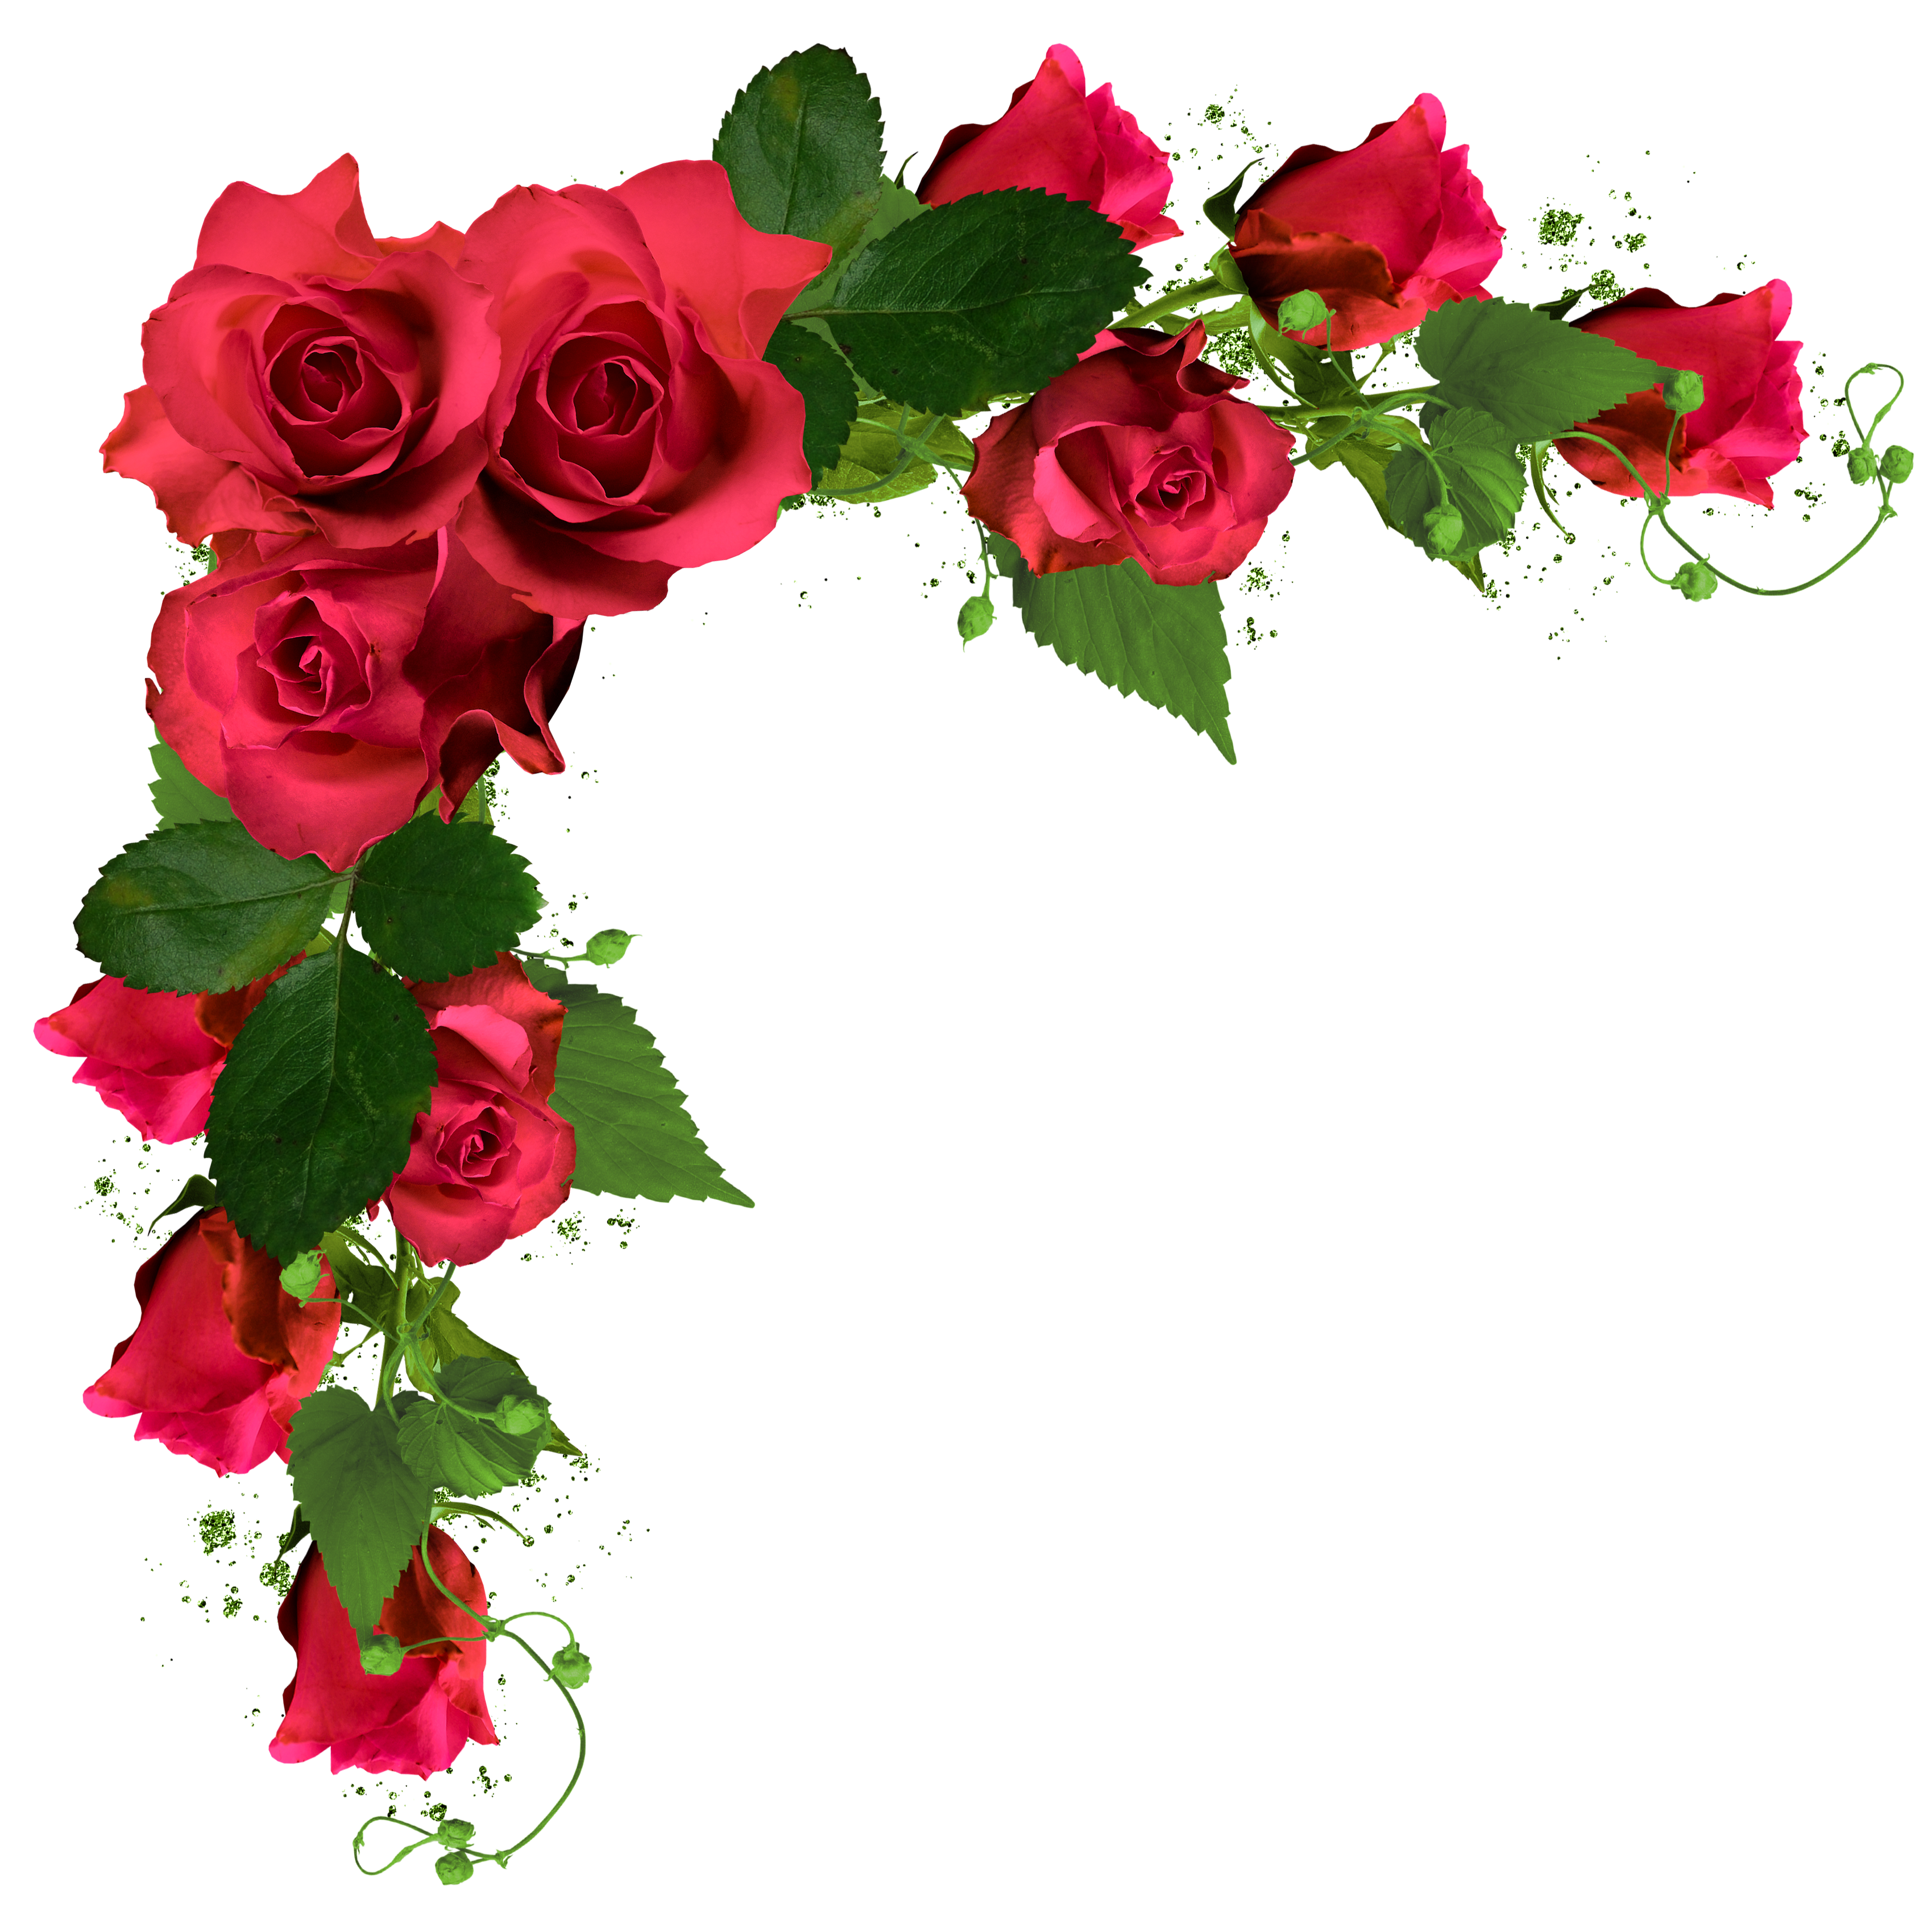 Rose clipart swirl. Beautiful decor with roses